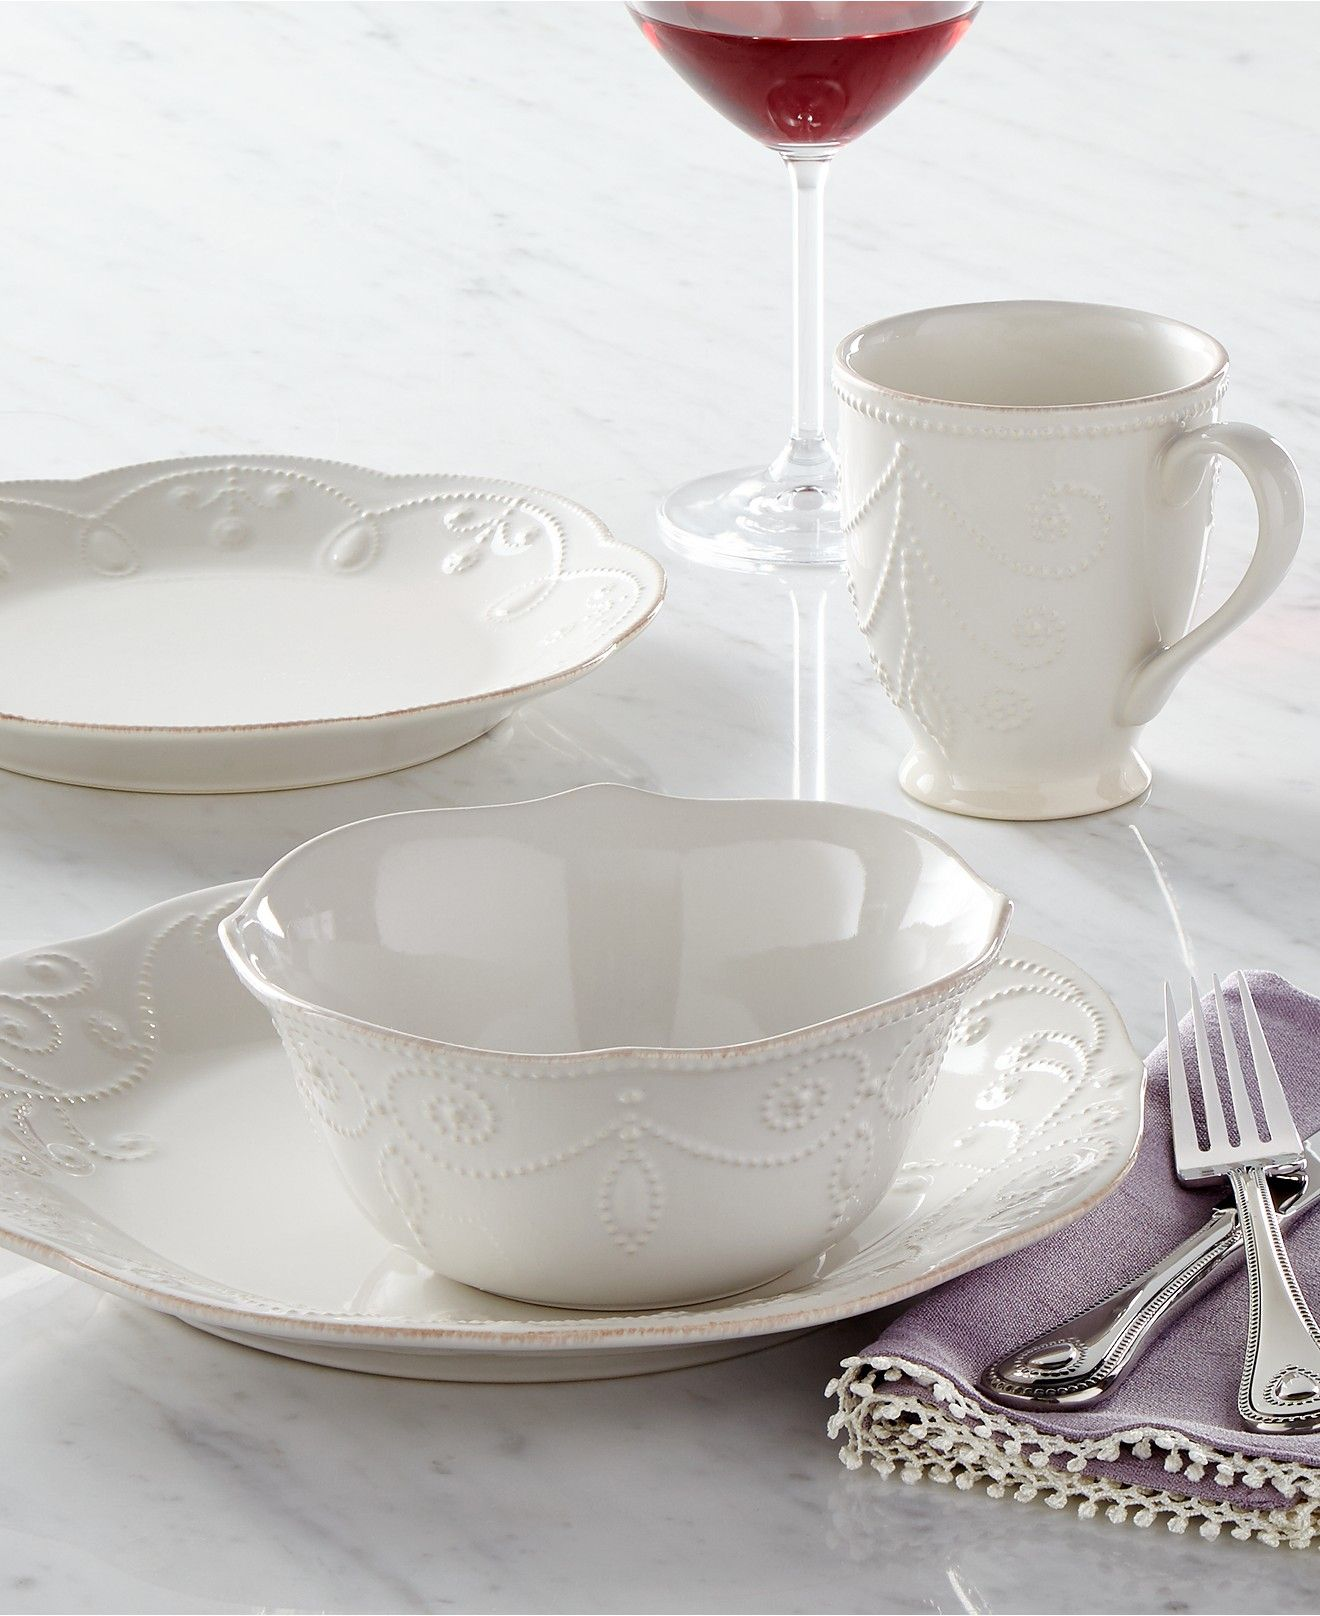 Lenox Dinnerware, French Perle Collection - Dinnerware - Dining & Entertaining - Macy's